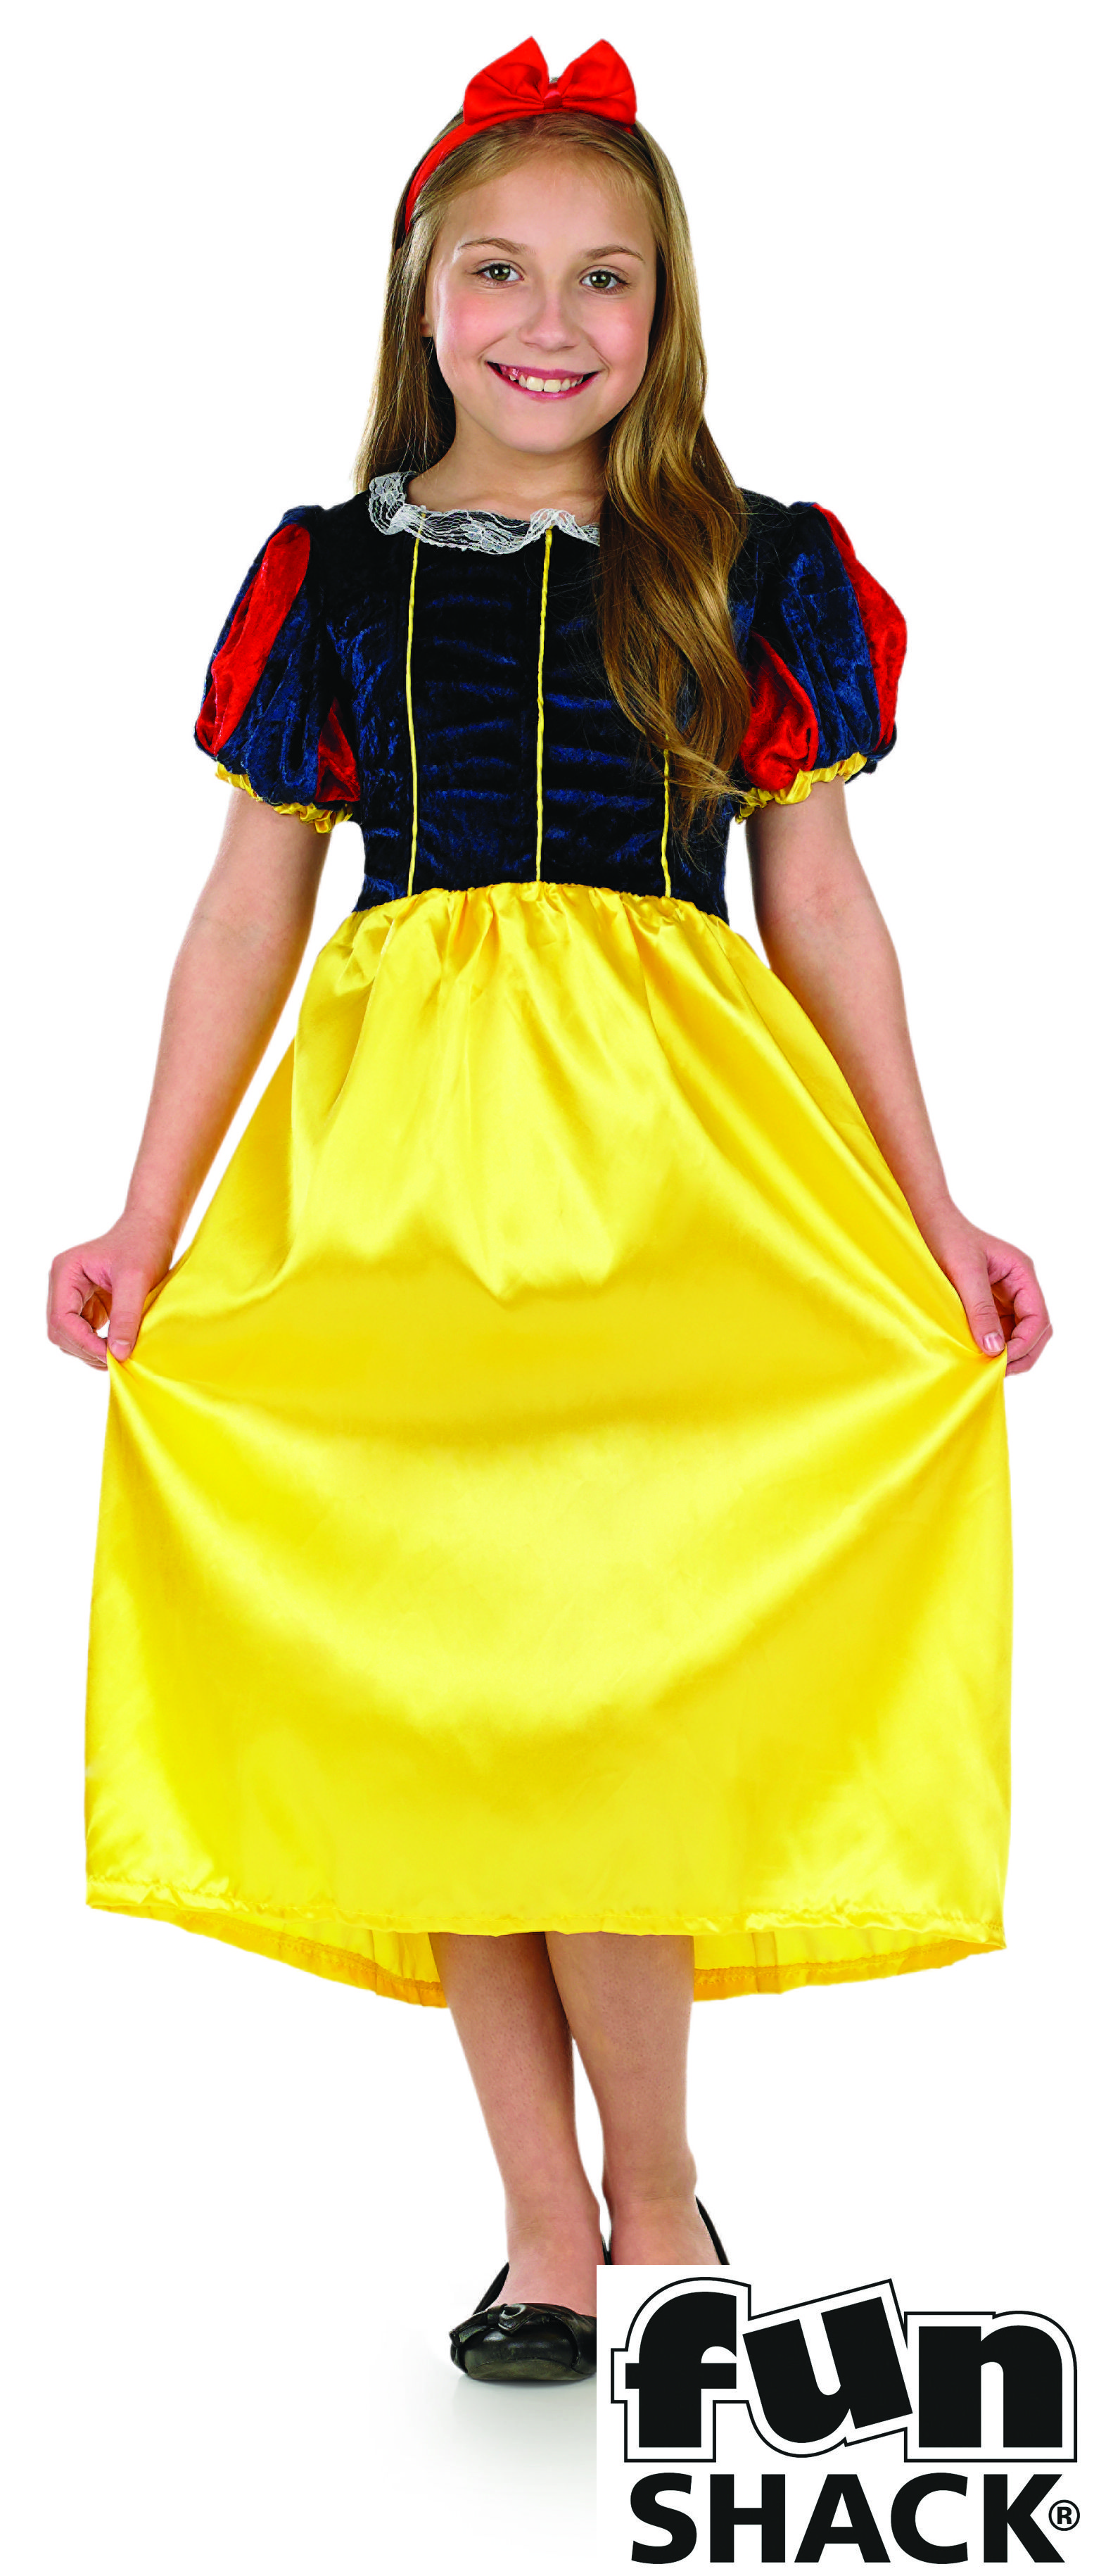 876ad6e4fa Snow White Kids Fancy Dress Costume by Fun Shack | World Book Day ...